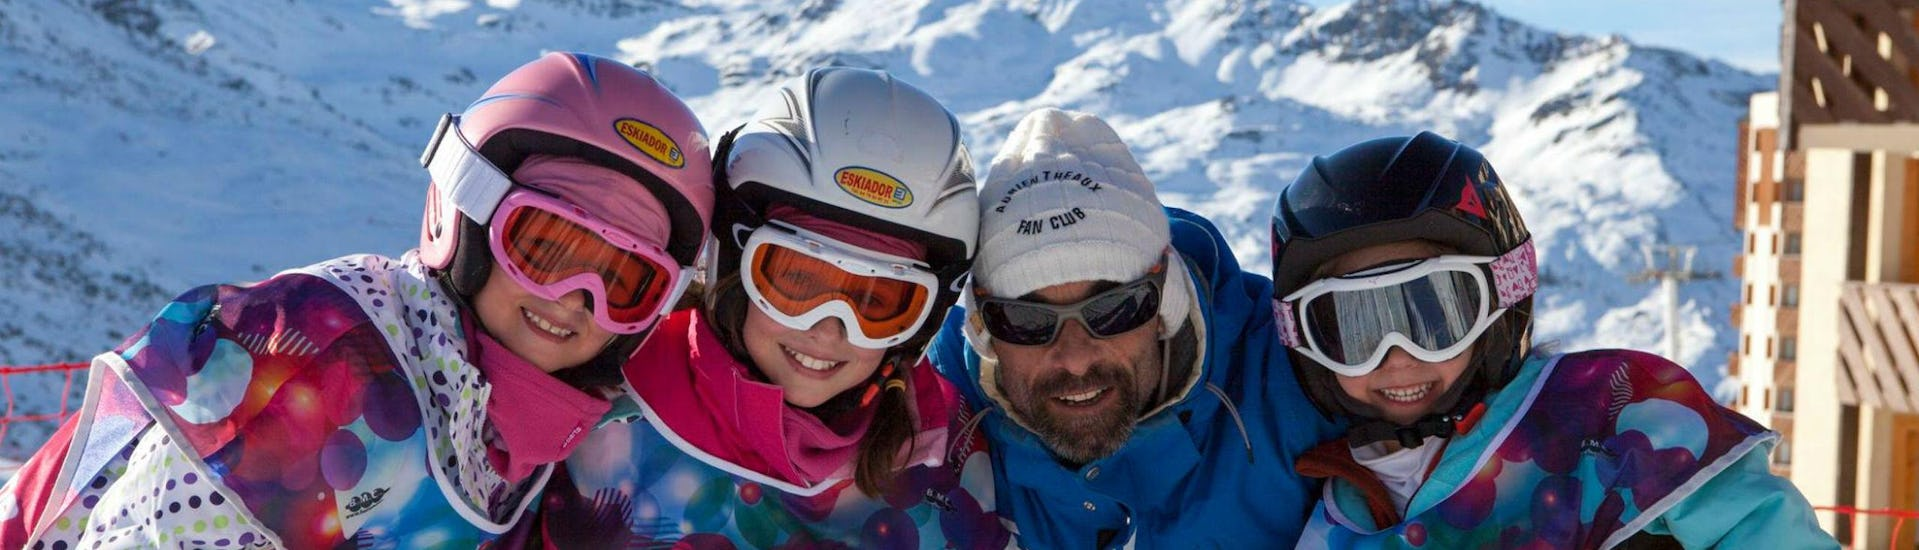 A group of children in full skiing gear are smiling at the camera together with their ski instructor from the ski school Prosneige Val Thorens & Les Menuires while preparing for their Kids Ski Lessons (5-13 years) - All Levels.